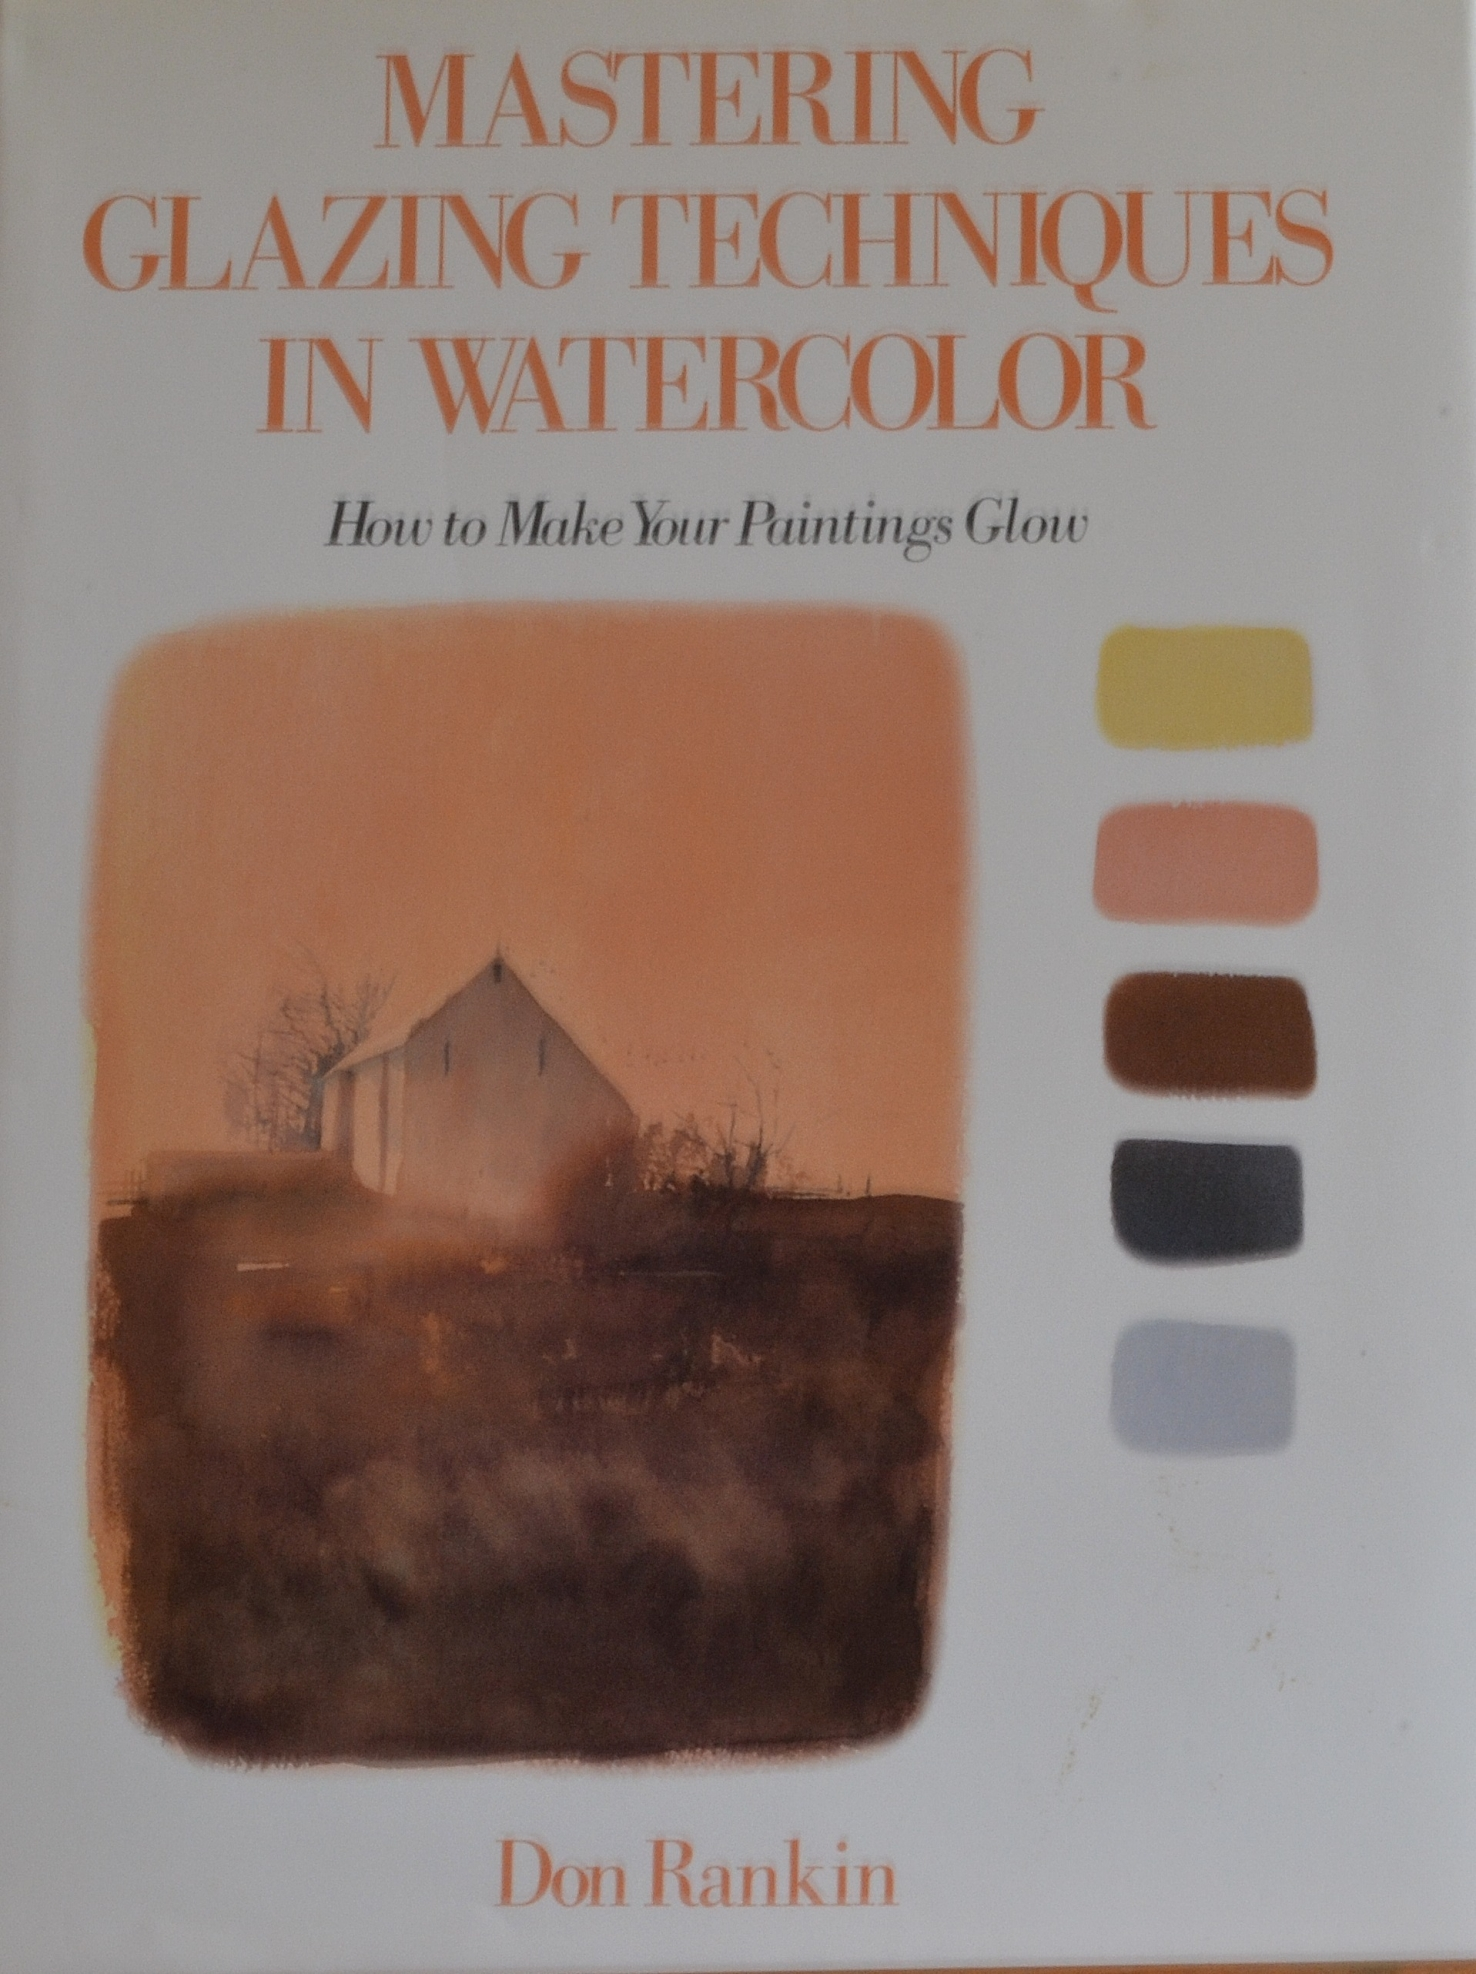 Watercolor books for sale - This Edition Hard Cover Was Issued In 1986 Halted In The 1990 S At Its Peak Of Popularity It Was Never Offered In Paperback